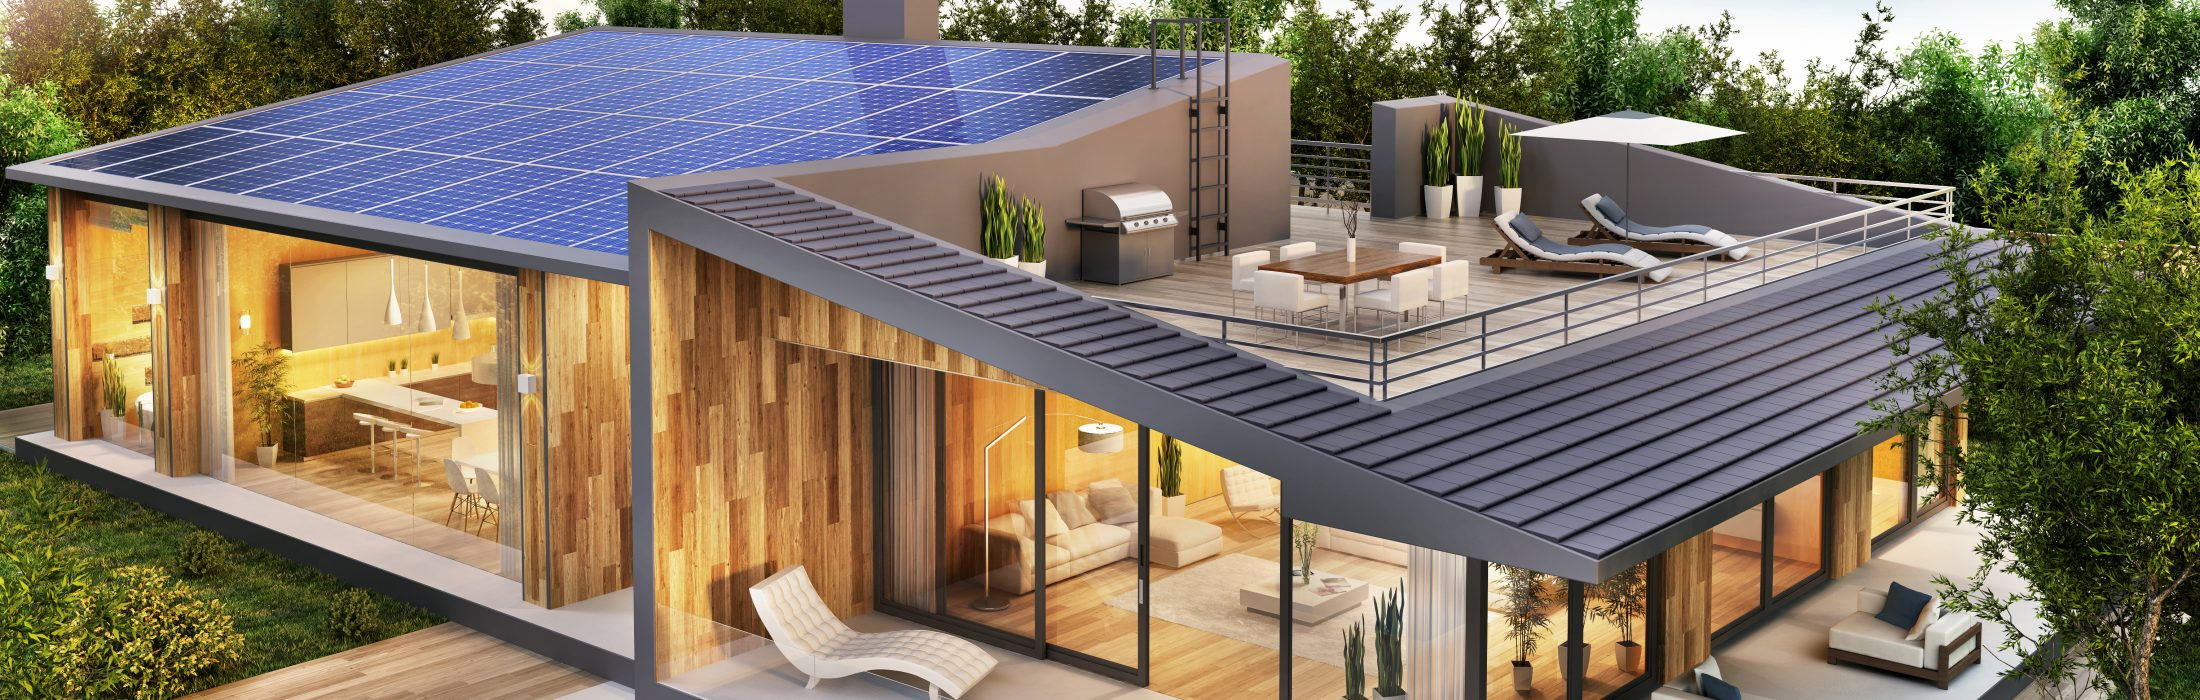 Econekt What Energy Standard Can You Apply To Your New Self-Build? image